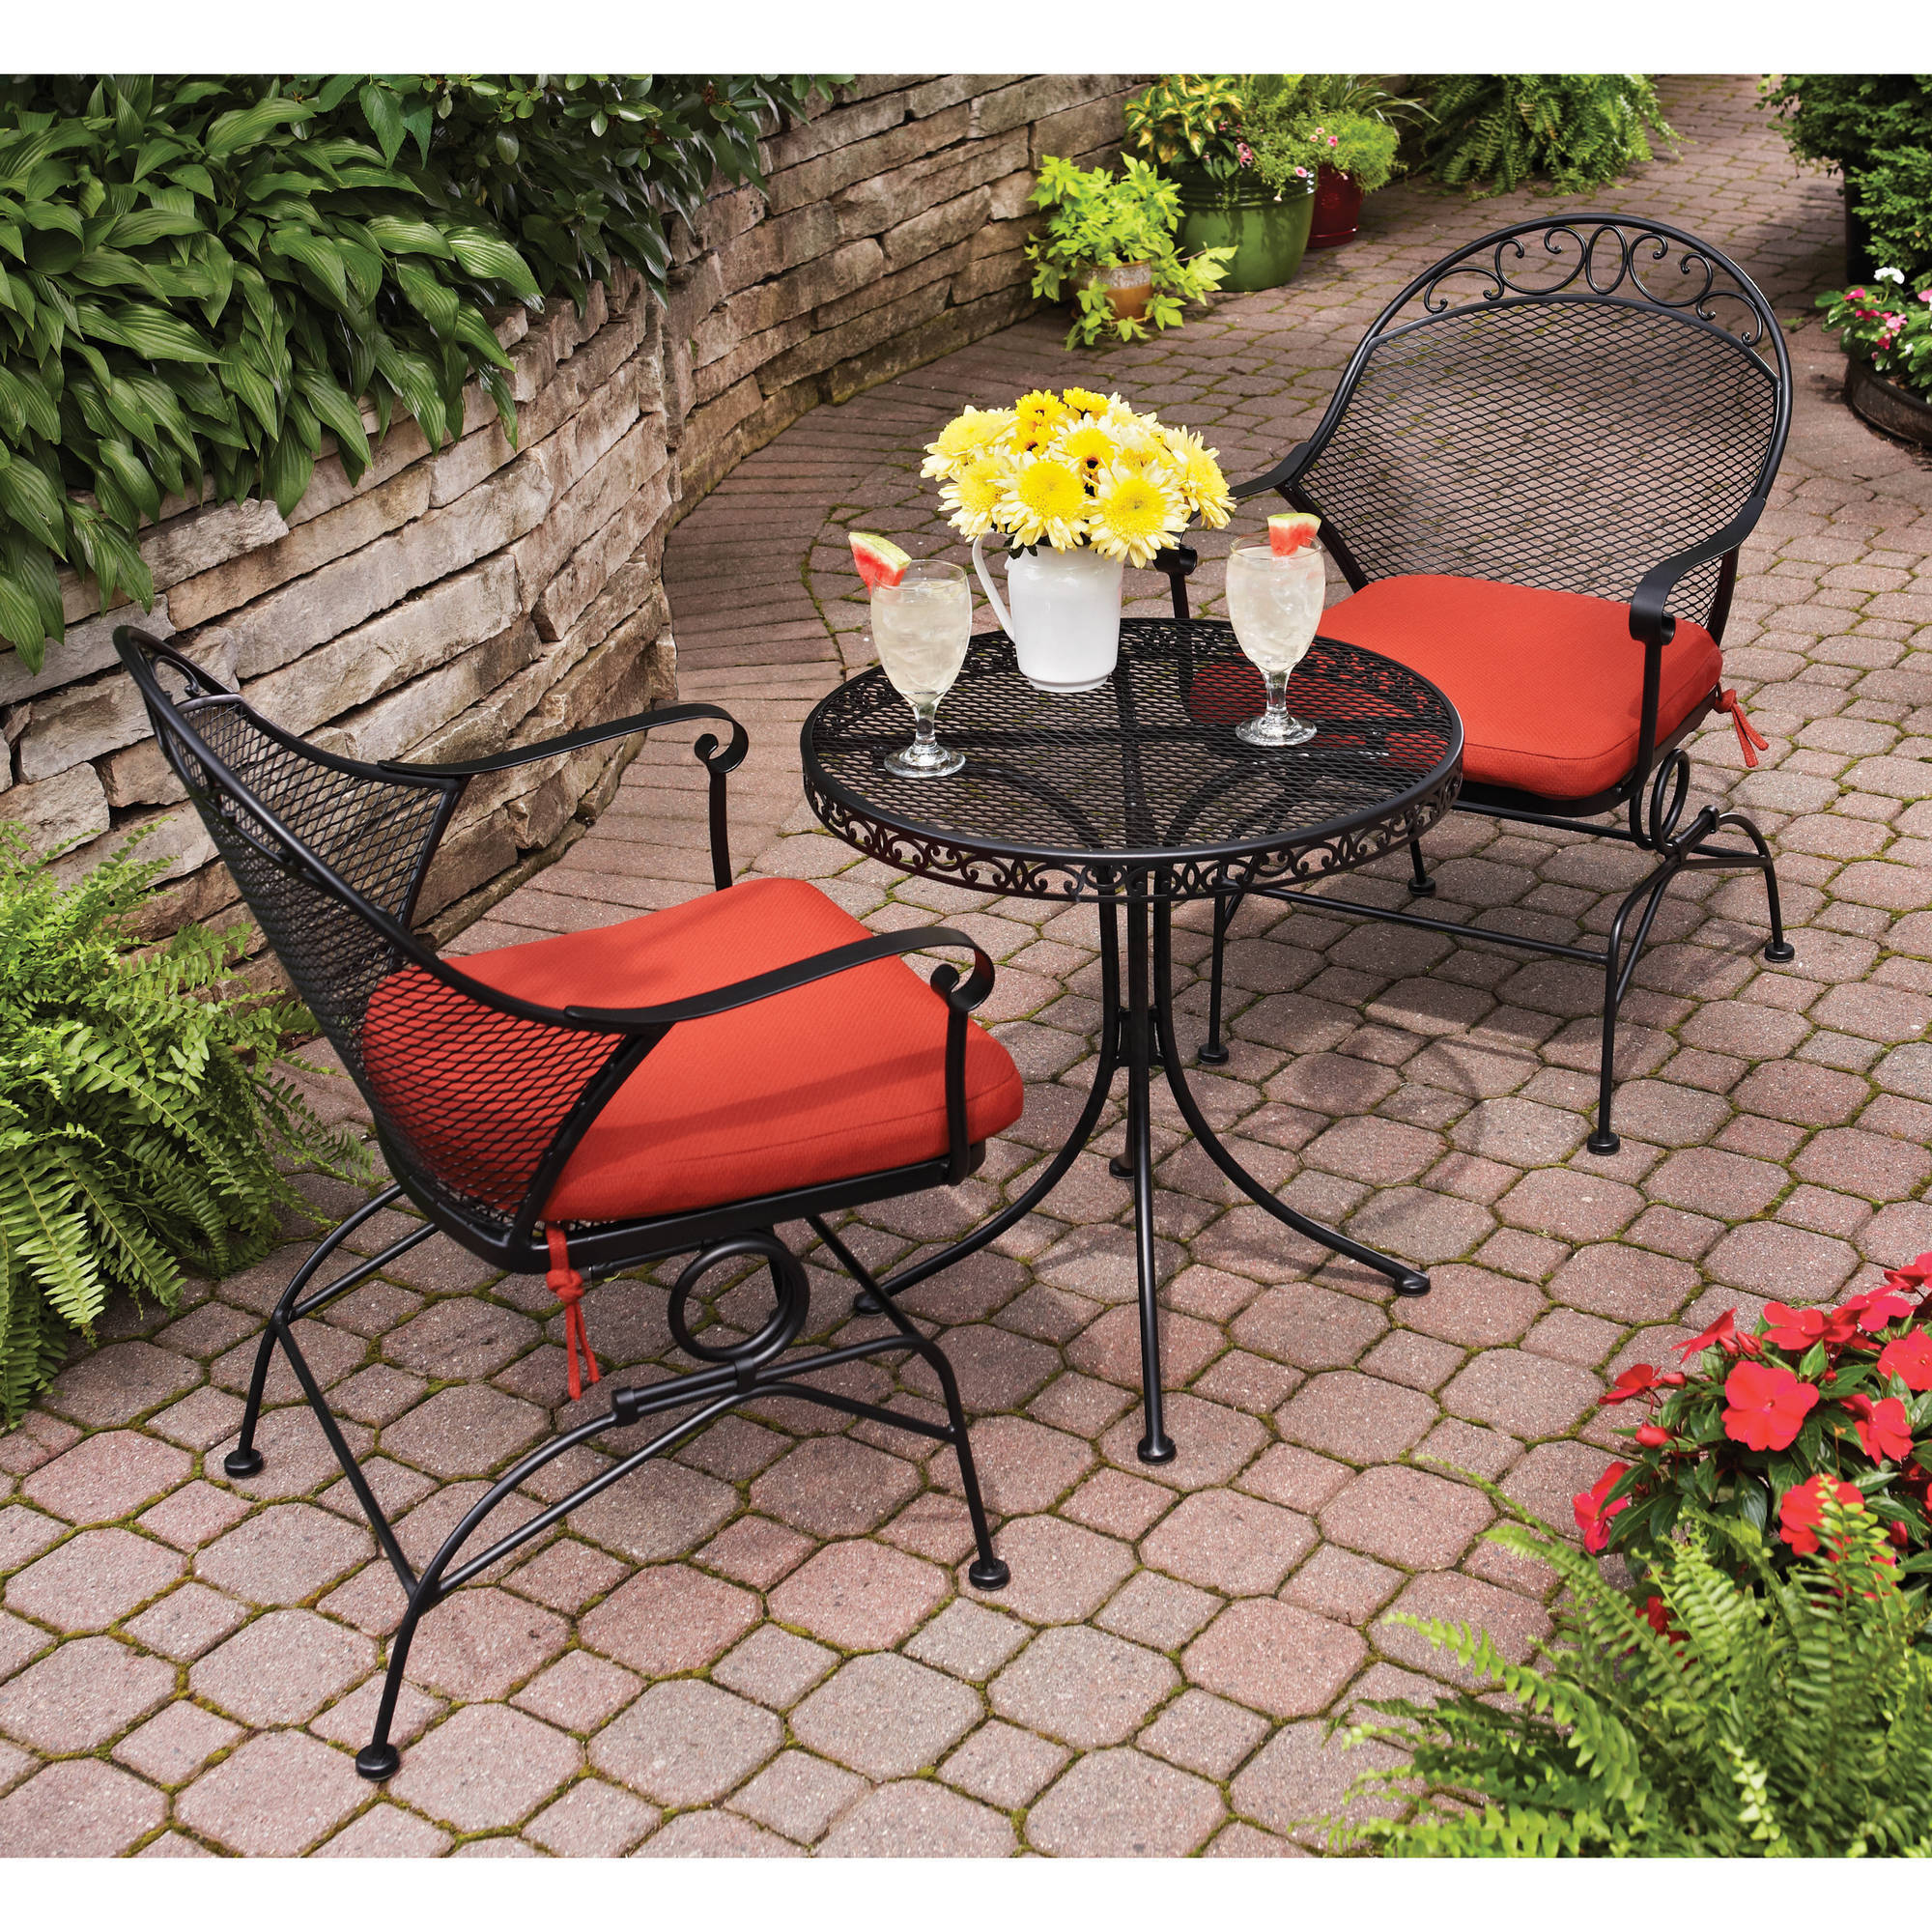 Better Homes and Gardens Clayton Court 3-Piece Motion Outdoor Bistro Set, Seats 2 Image 1 of 6